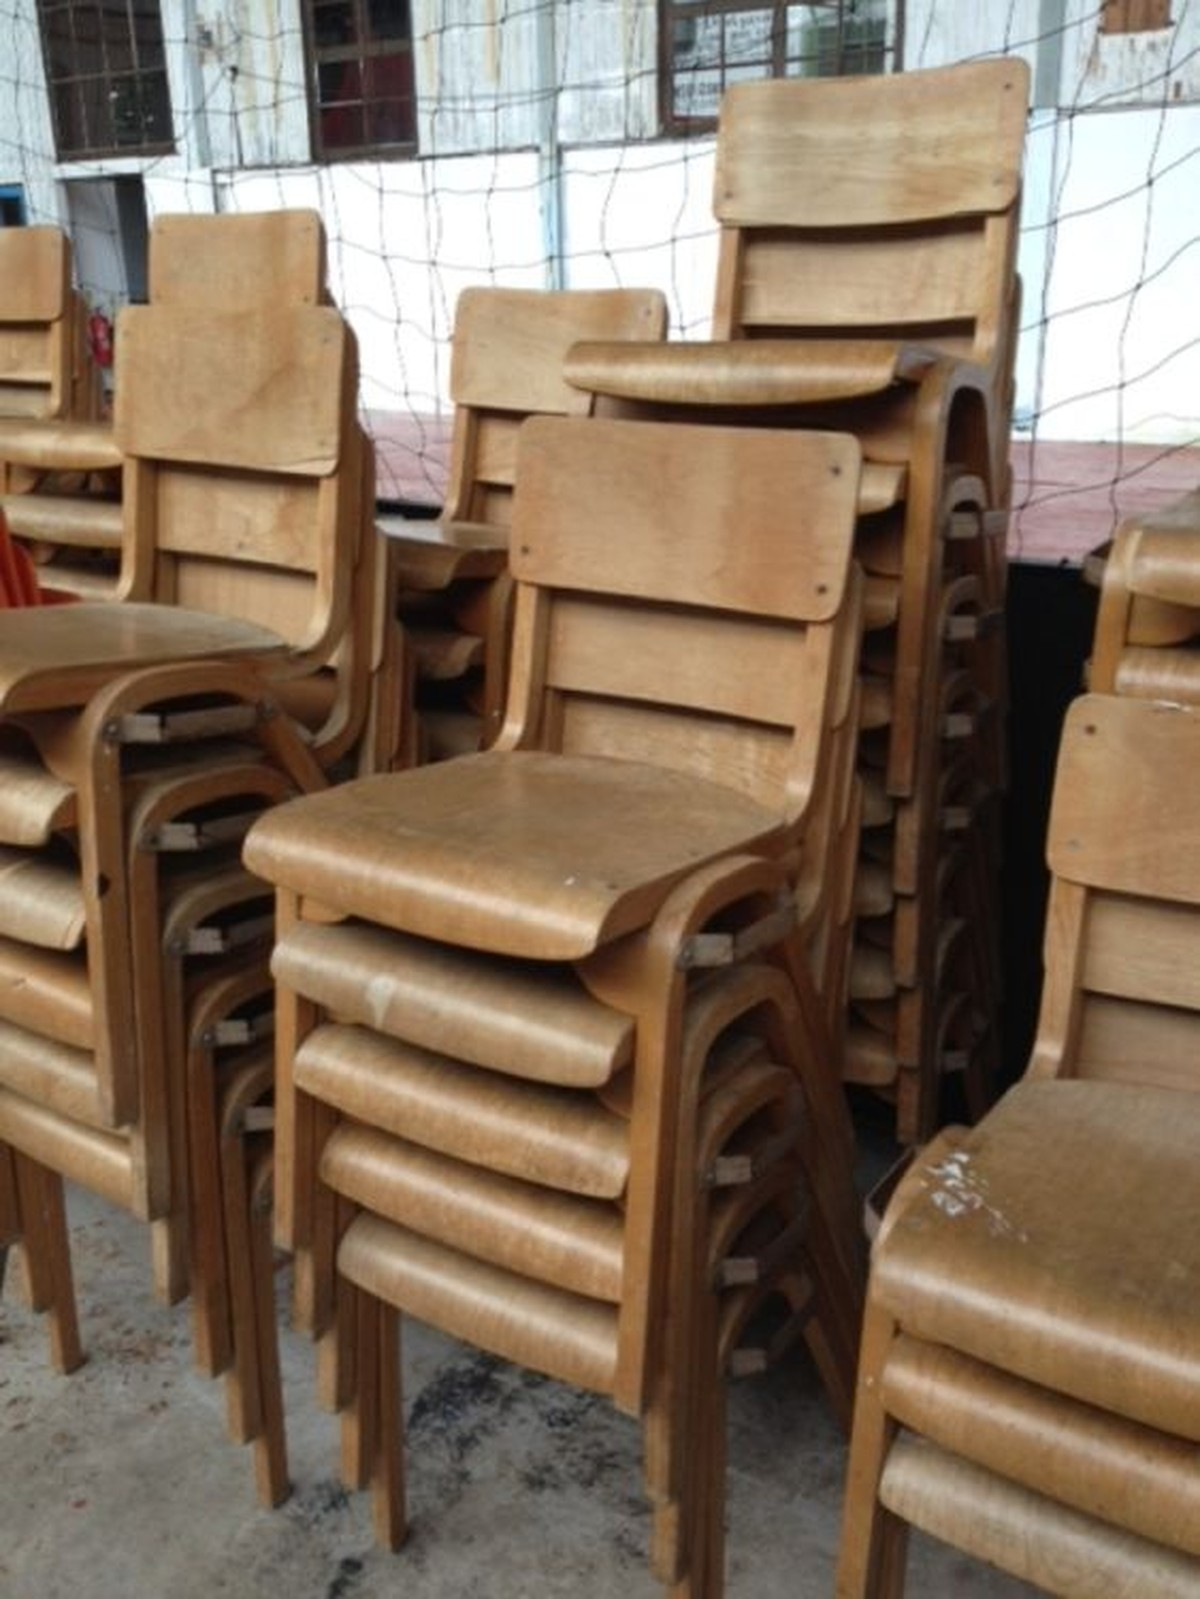 vintage 70s furniture. 91x Wooden Chairs Vintage 70s Furniture